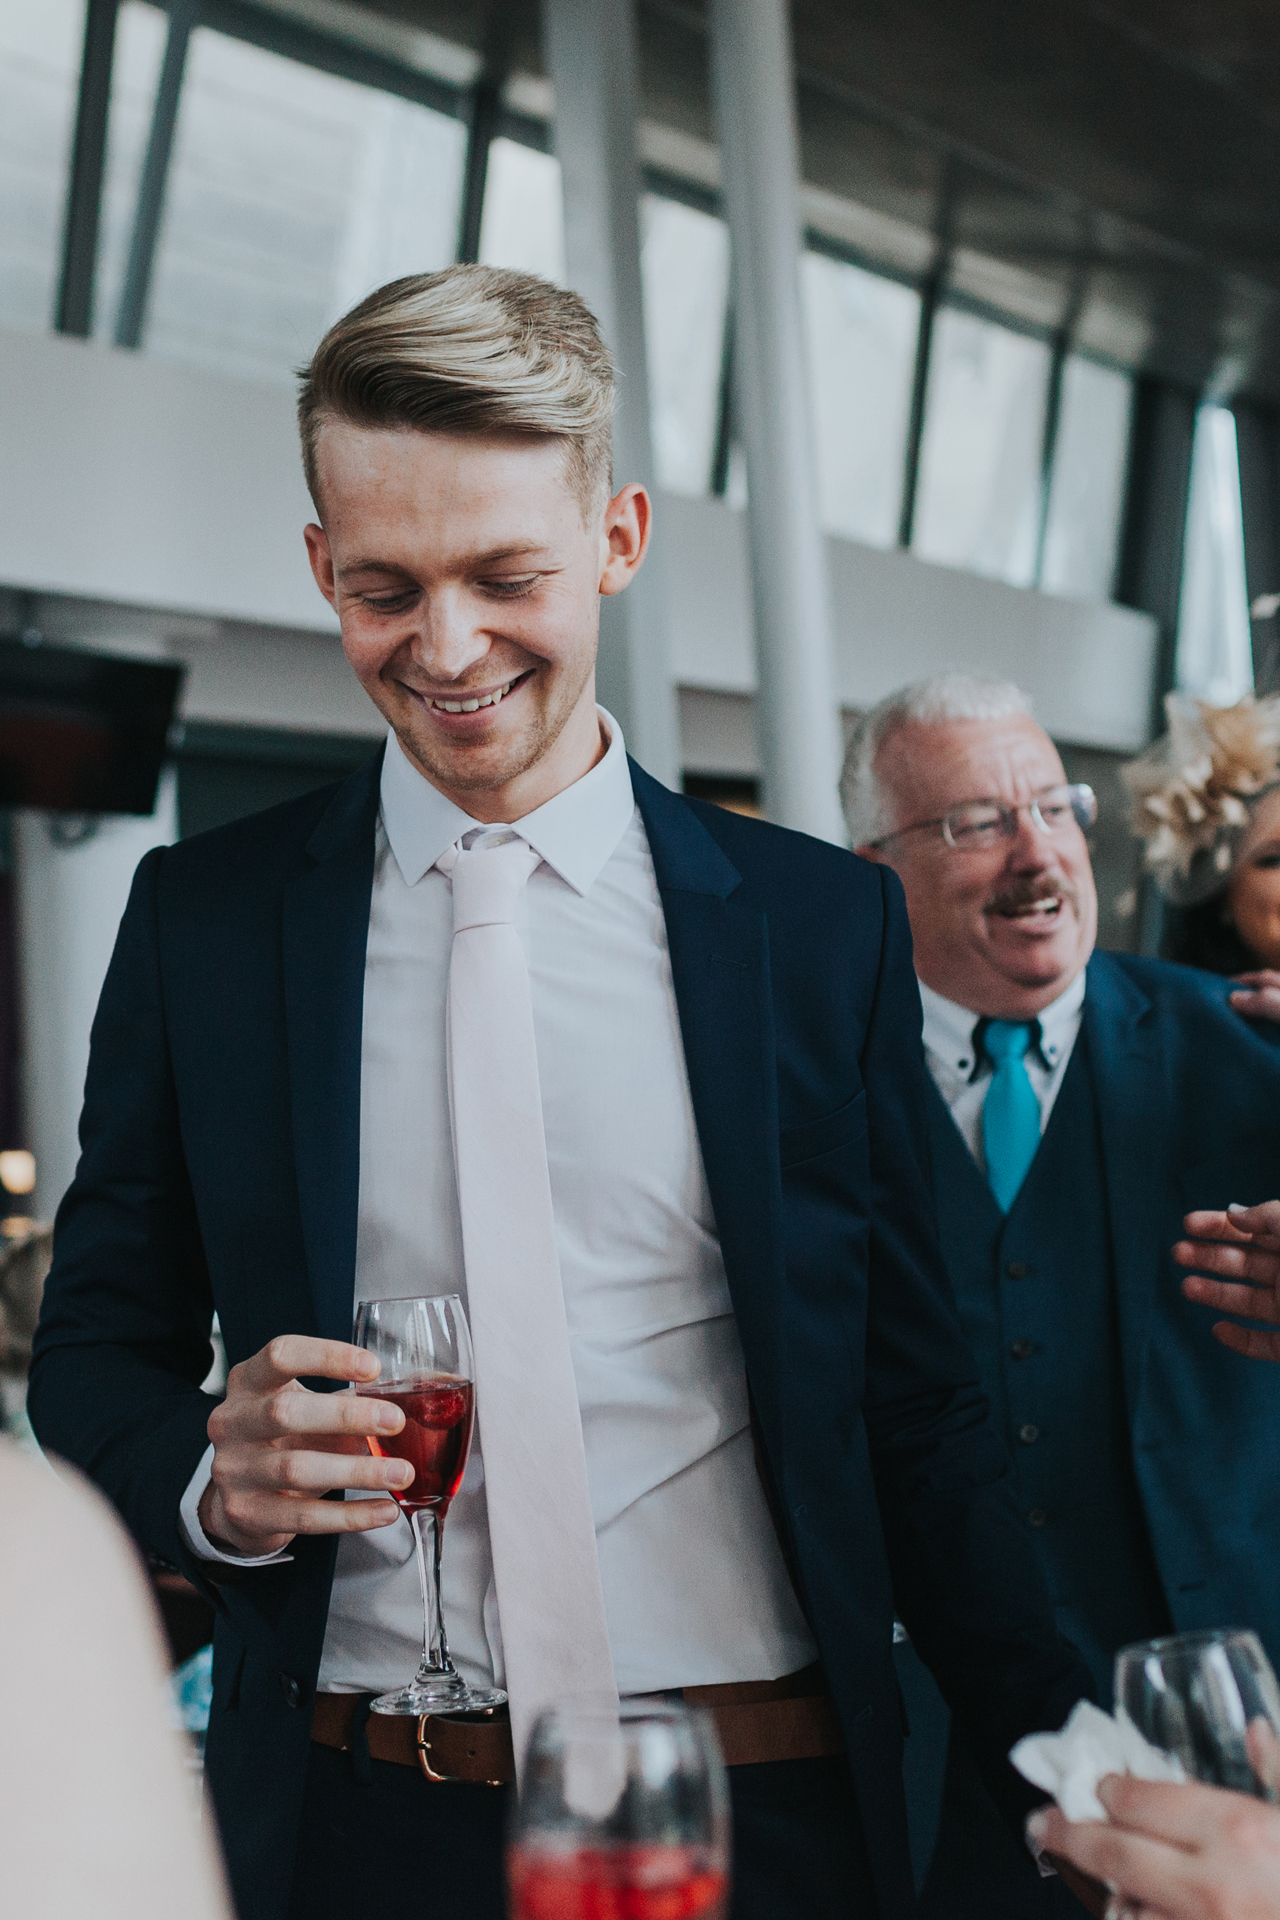 Young wedding guest looks pleased with himself.